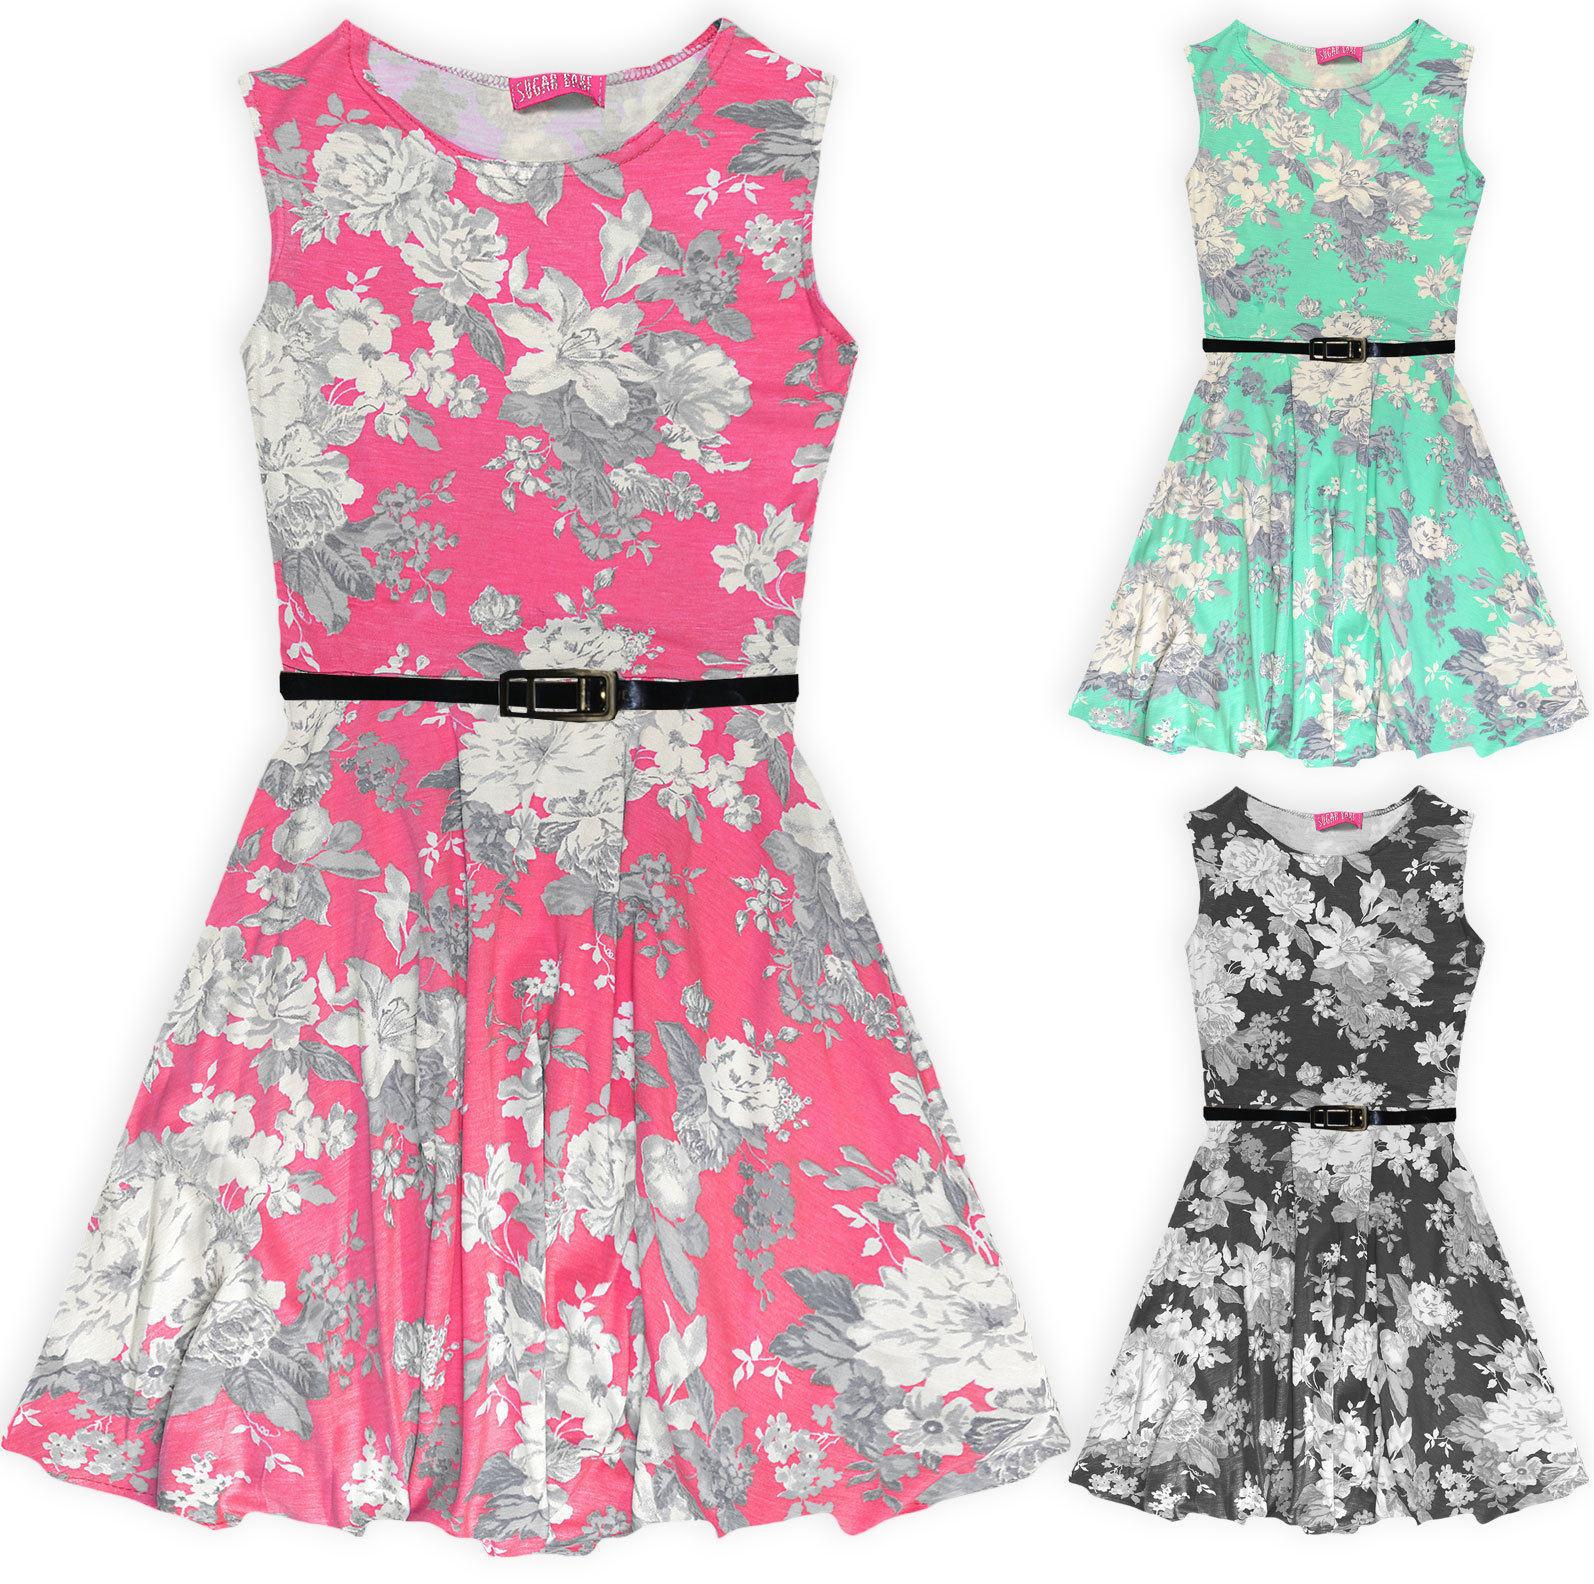 Details about Girls Floral Skater Dress Kids Summer Belted Sun Dresses New  Black Age 7,13 Year